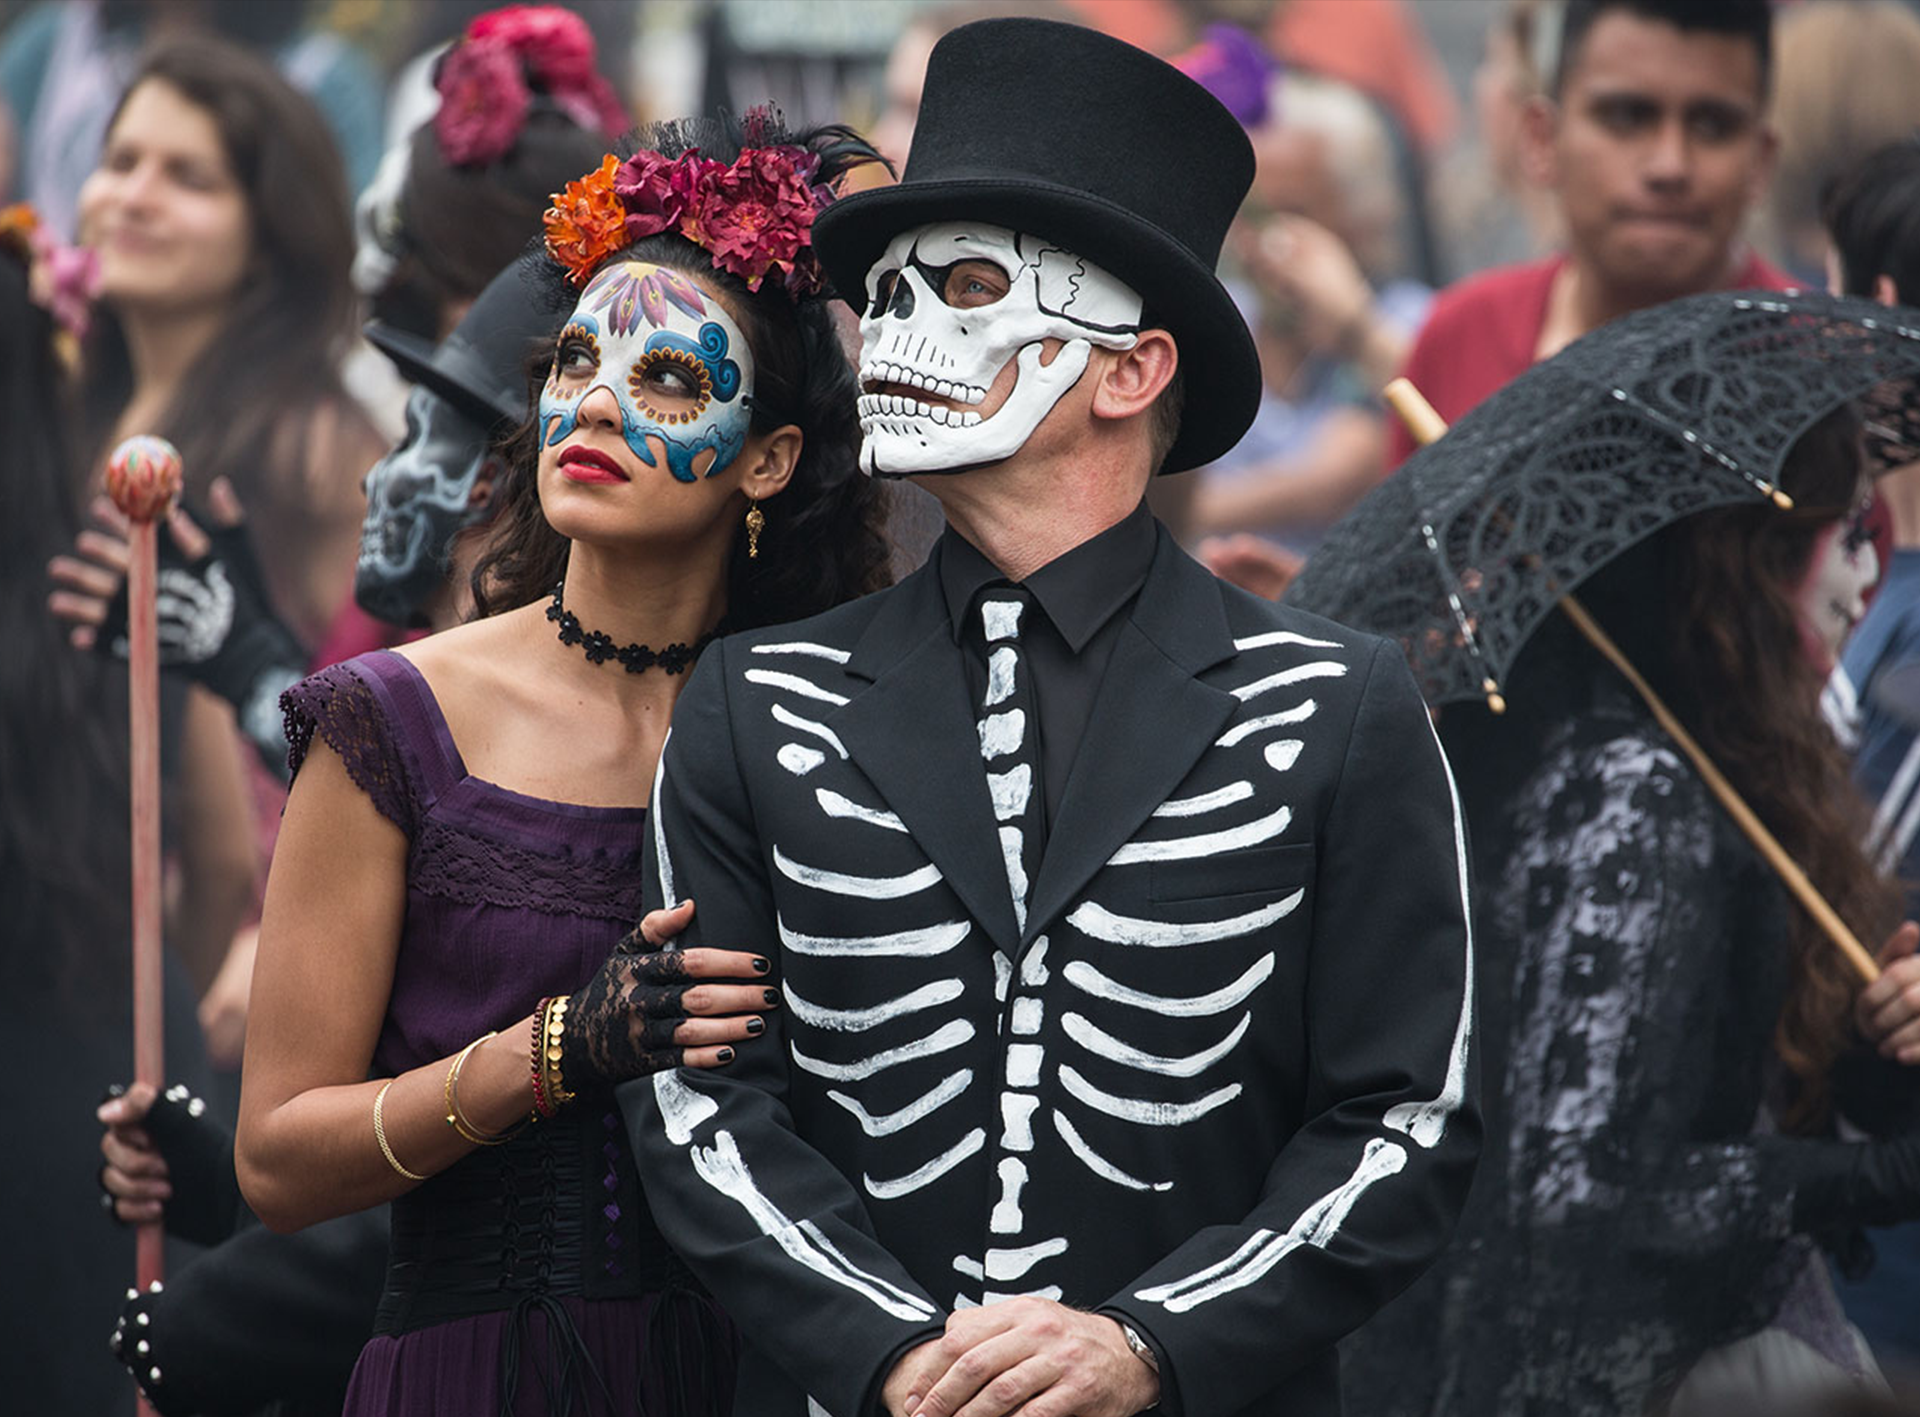 Focus Of The Week: <i>Spectre's</i> Day of the Dead scene